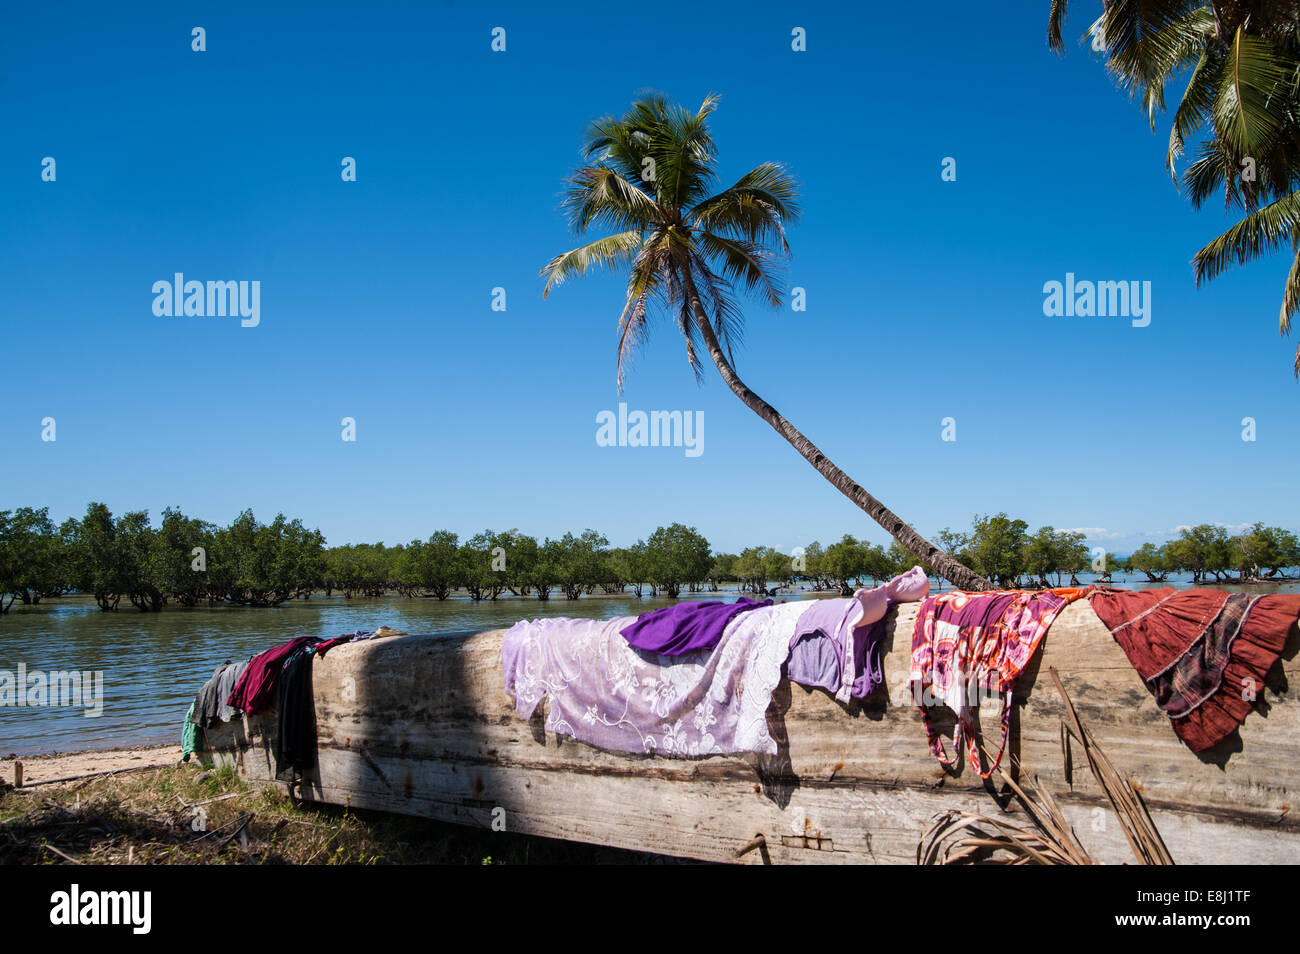 Malagasy canoe on the beach, Fisher's village, Madagascar, Africa - Stock Image